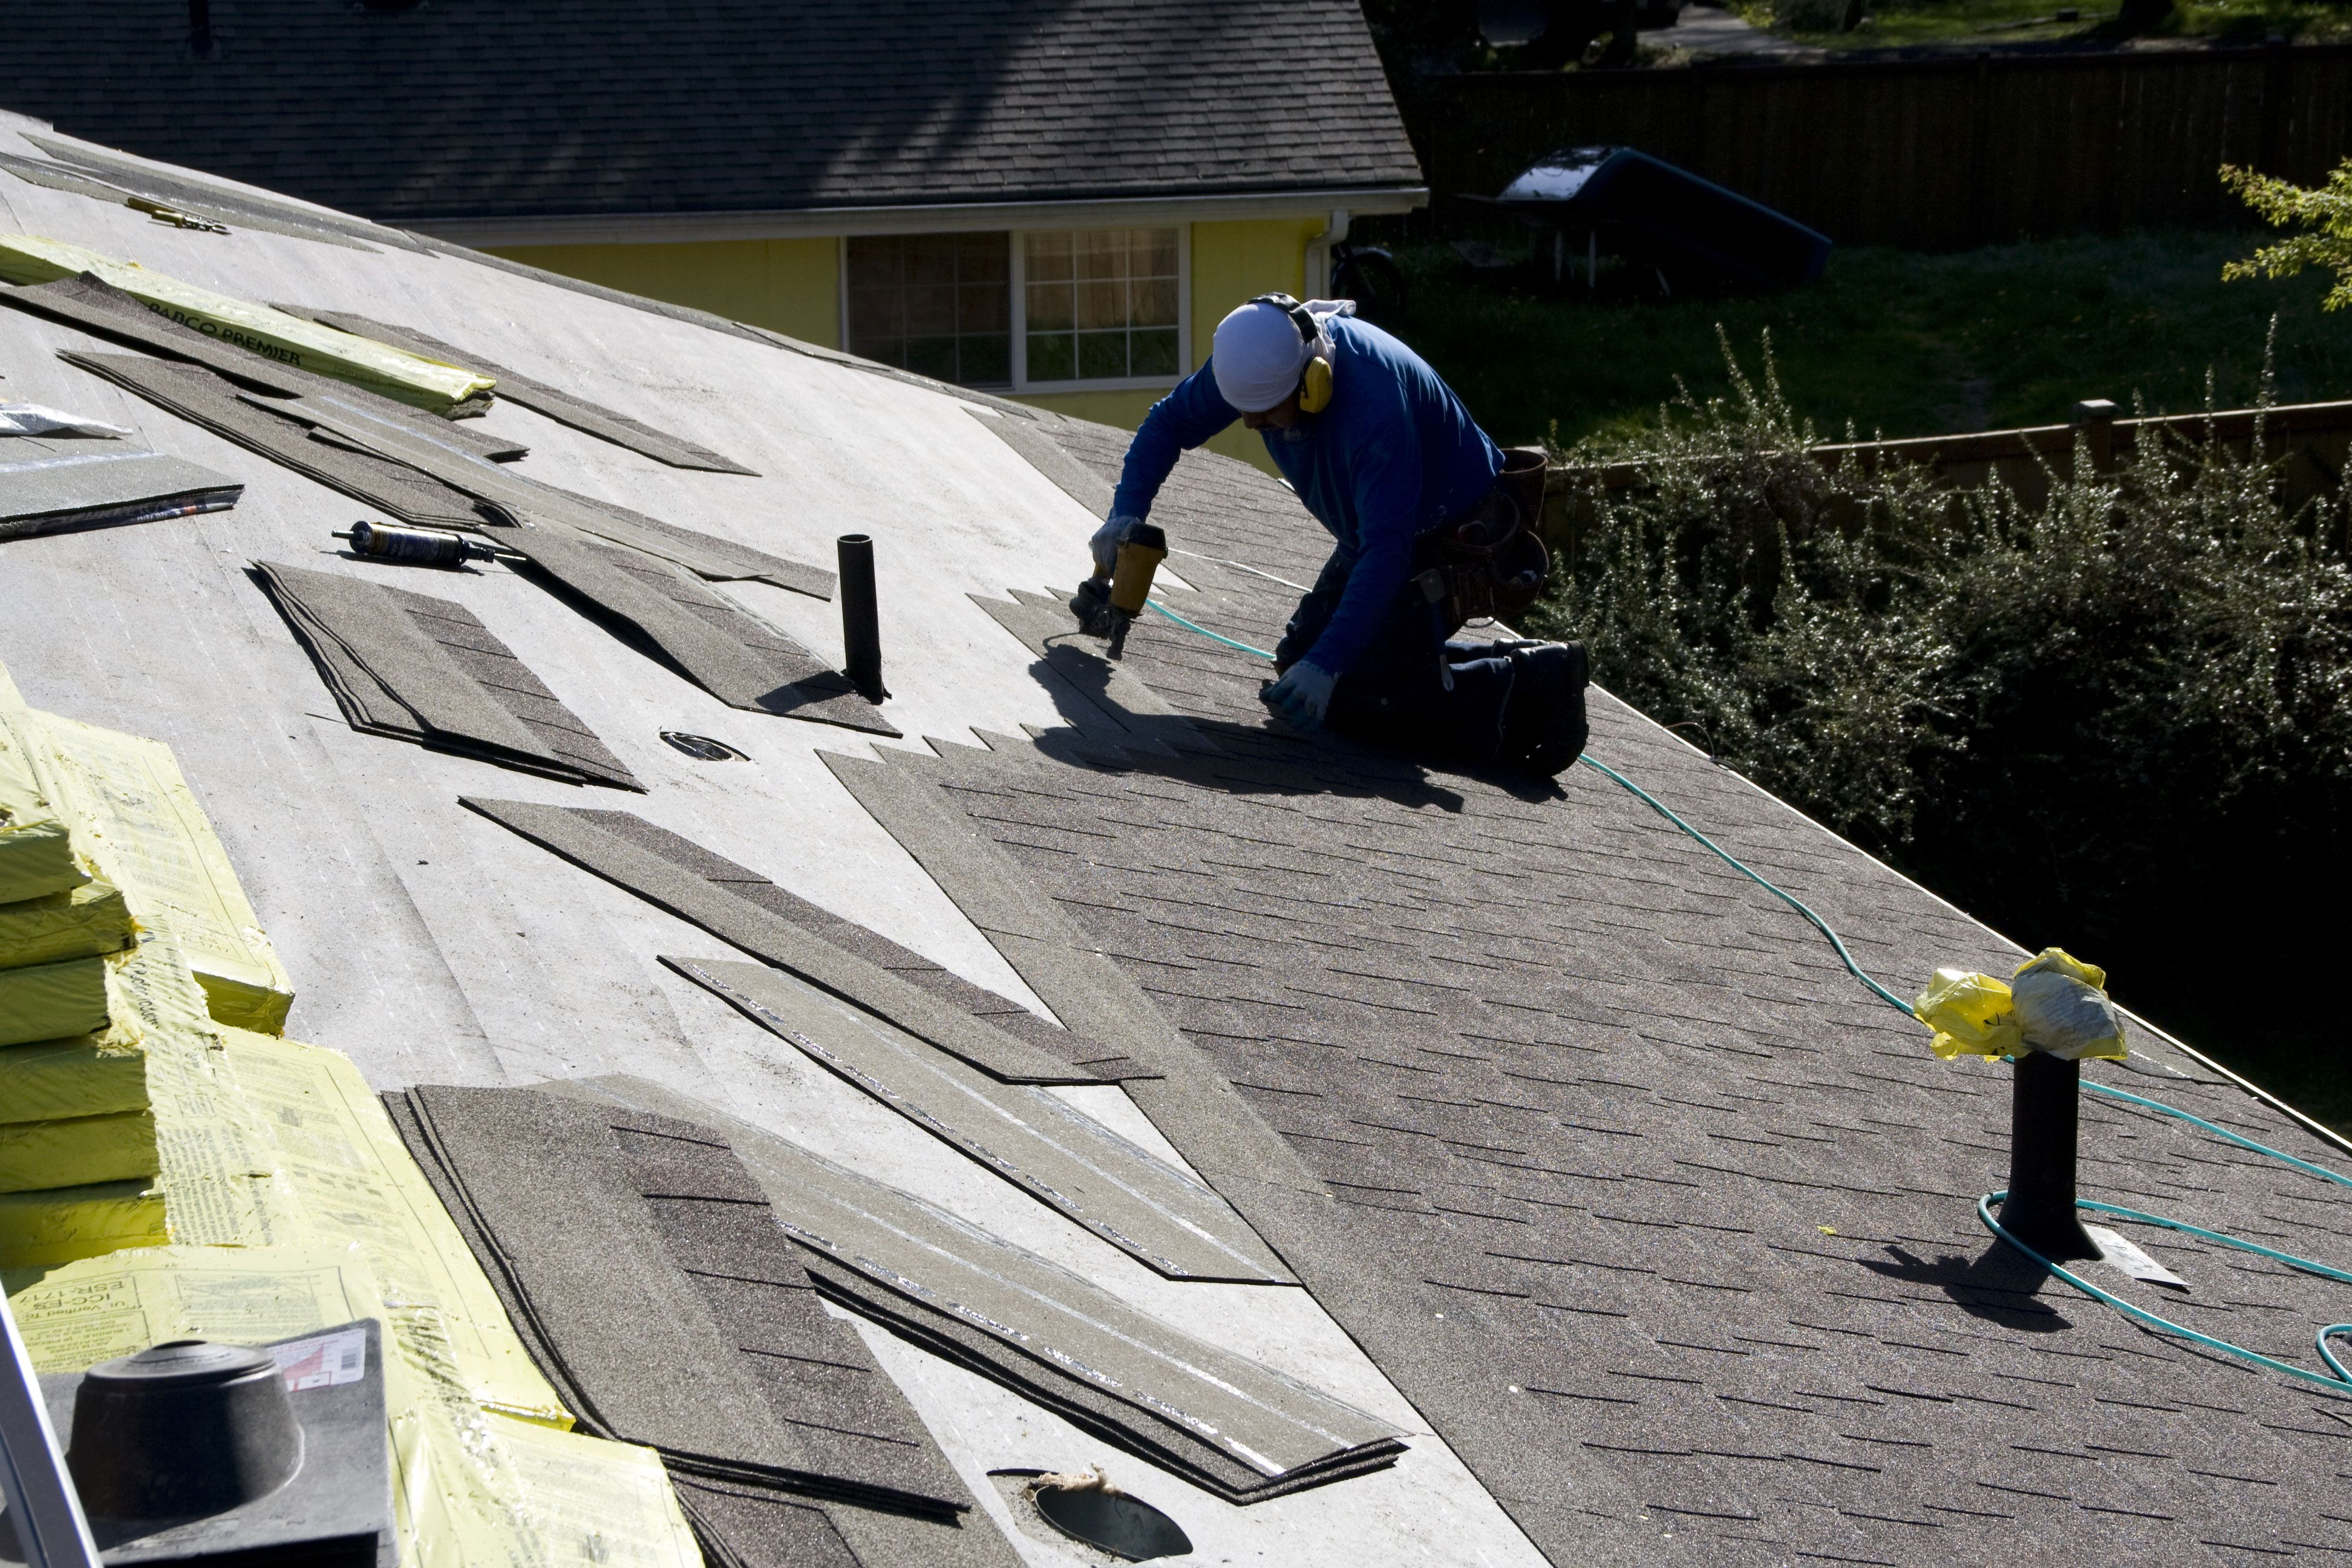 Roofing general contractors in manhattan offers free site visits